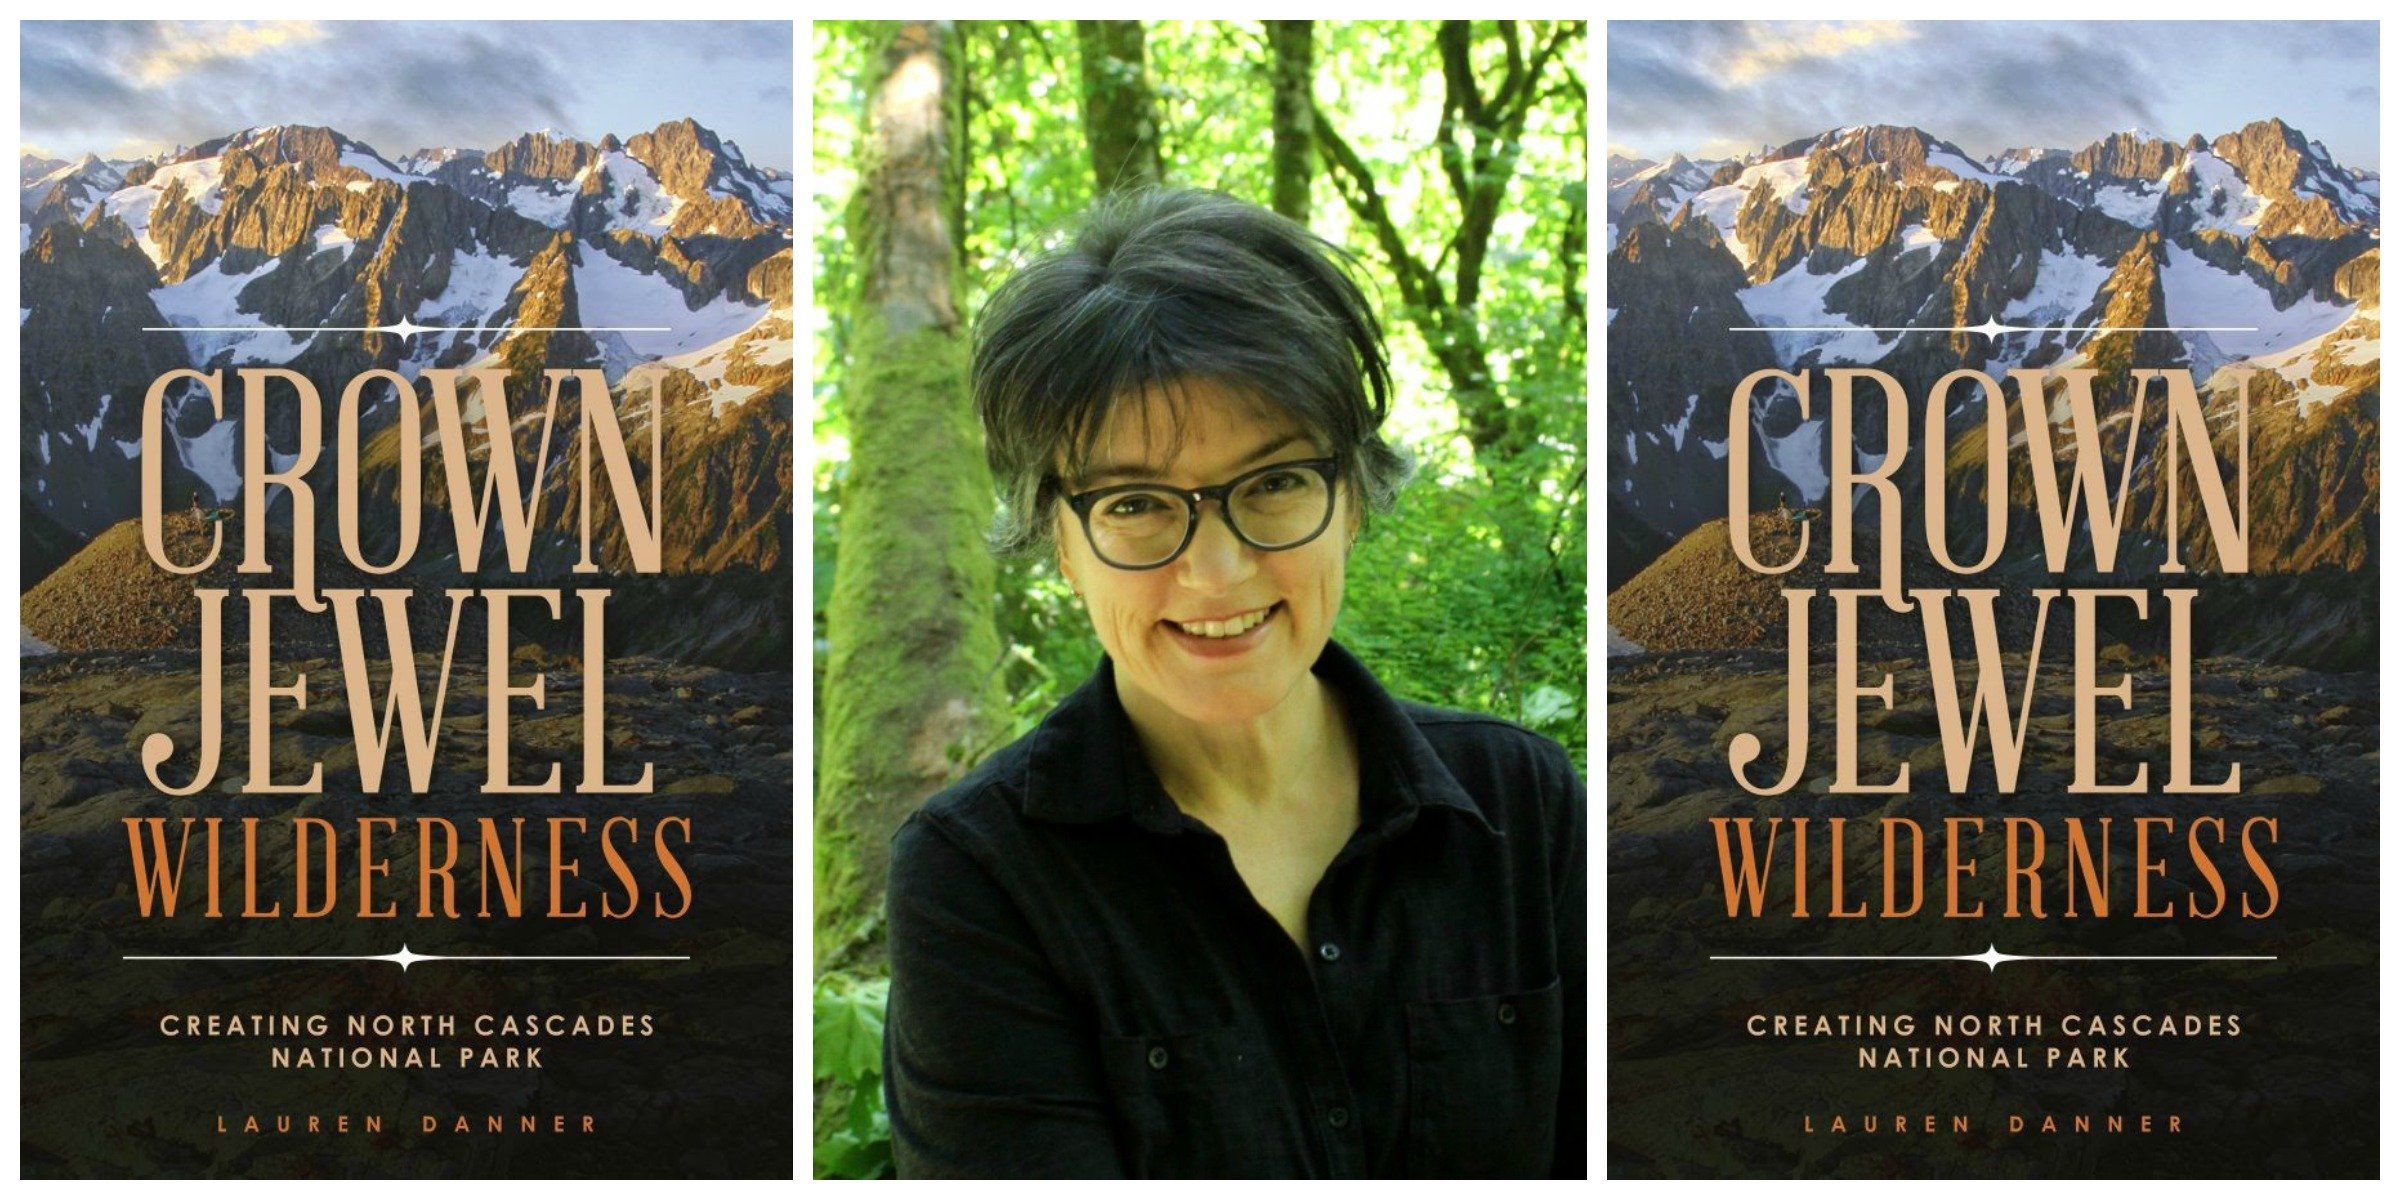 A Review of Crown Jewel Wilderness by Lauren Danner